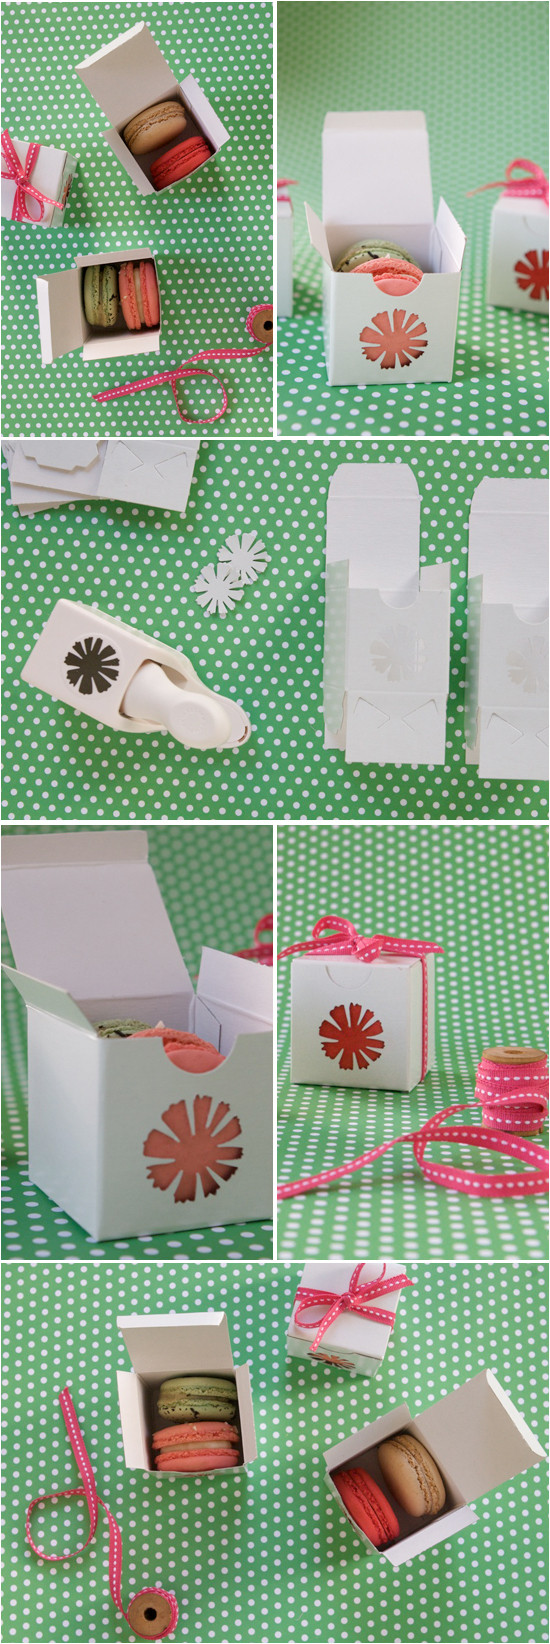 Best ideas about DIY Macaron Box . Save or Pin DIY Macaron Favors Project Wedding Now.